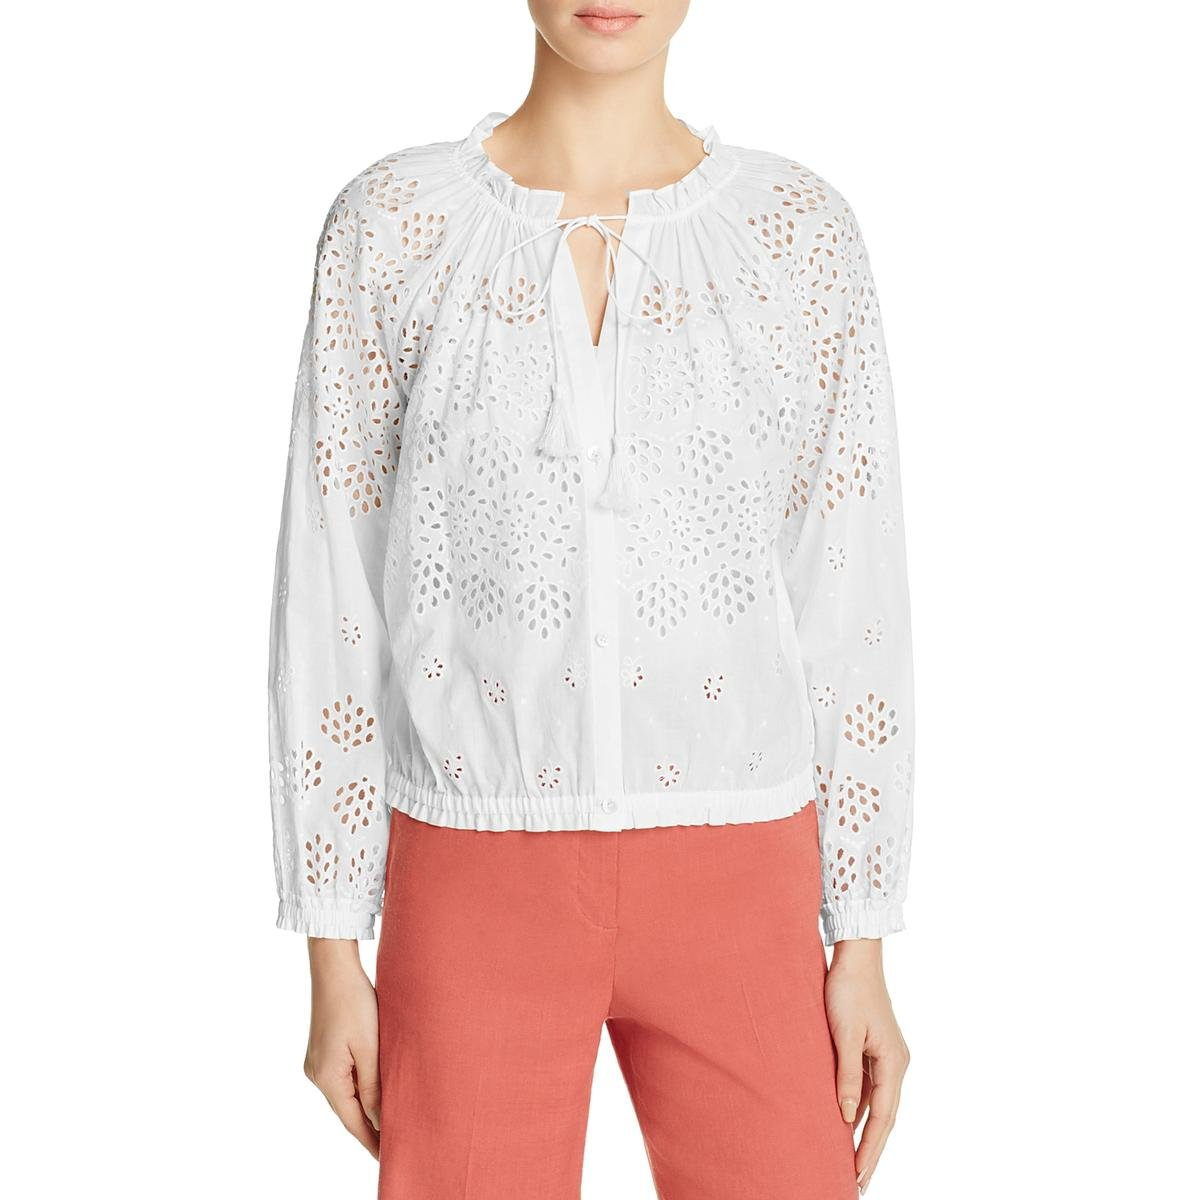 Theory Womens Maryana Eyelet Button Down Casual Top White S